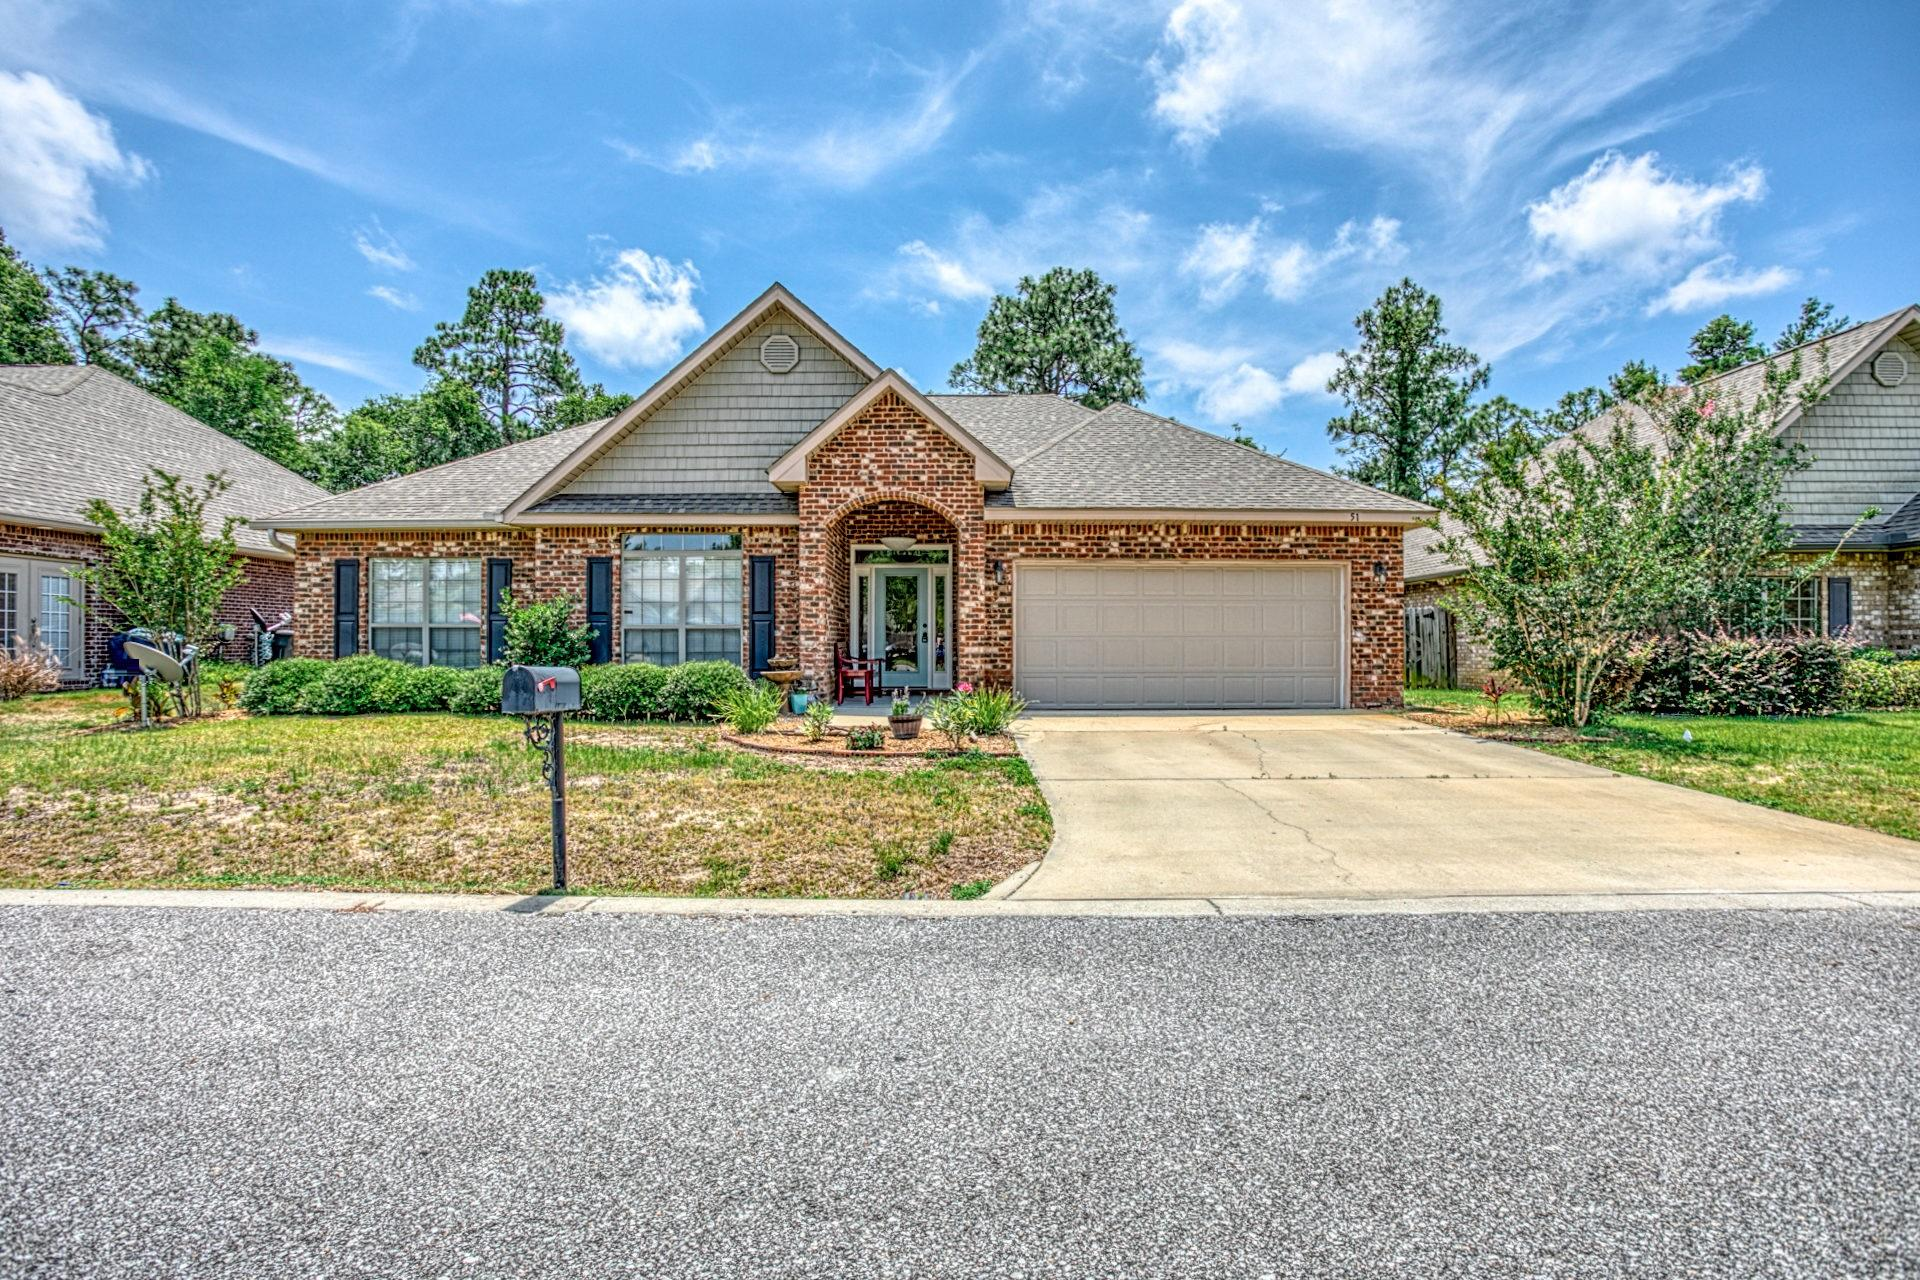 This stunning 3 br 2 bath brick home is located in the highly desirable community of Peach Creek. The home has freshly installed cherry laminate floors, updated kitchen, back-splash, center, island, crown molding in master. One of the most relaxing outdoor entertaining areas with a large floating deck, water fall, and separate patio for lounging or a fire pit. Protected wildlife area behind the home. Within a couple of miles of new schools, 5 minutes to the beautiful beaches and all that 30A has to offer. Walk down to the intercoastal waterway and fish, kayak or boarding. A great community for all ages.